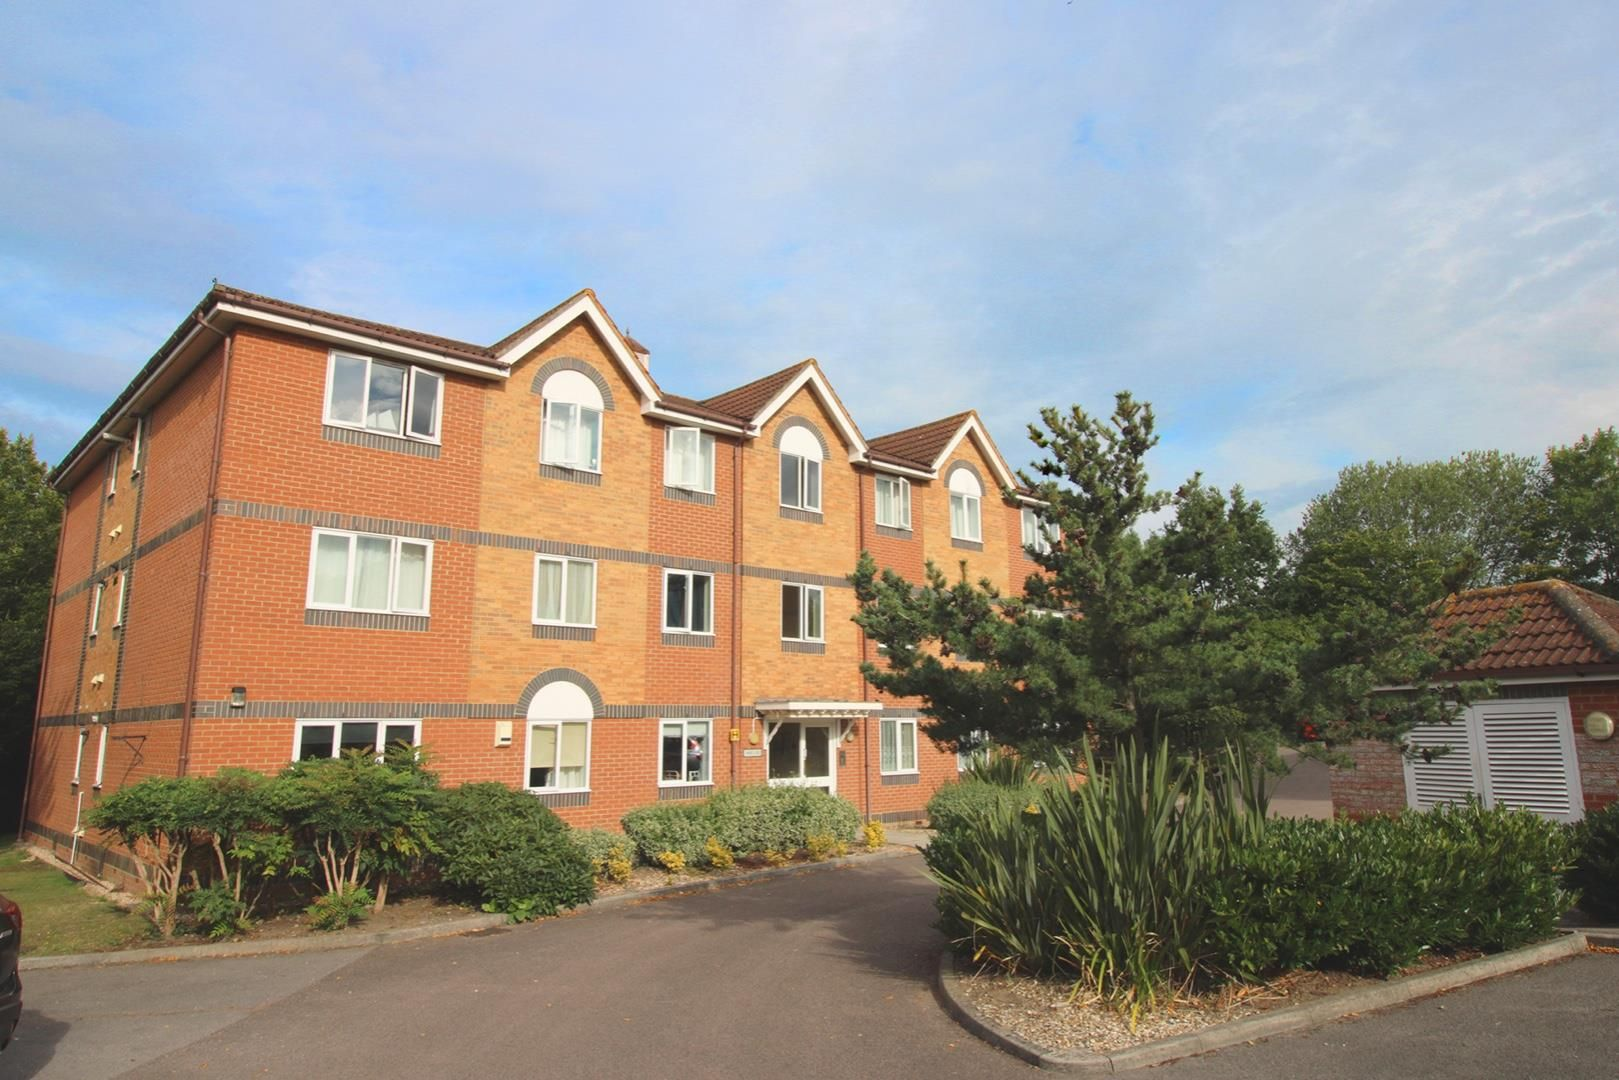 2 bed apartment for sale in Hebbecastle Down, RG42